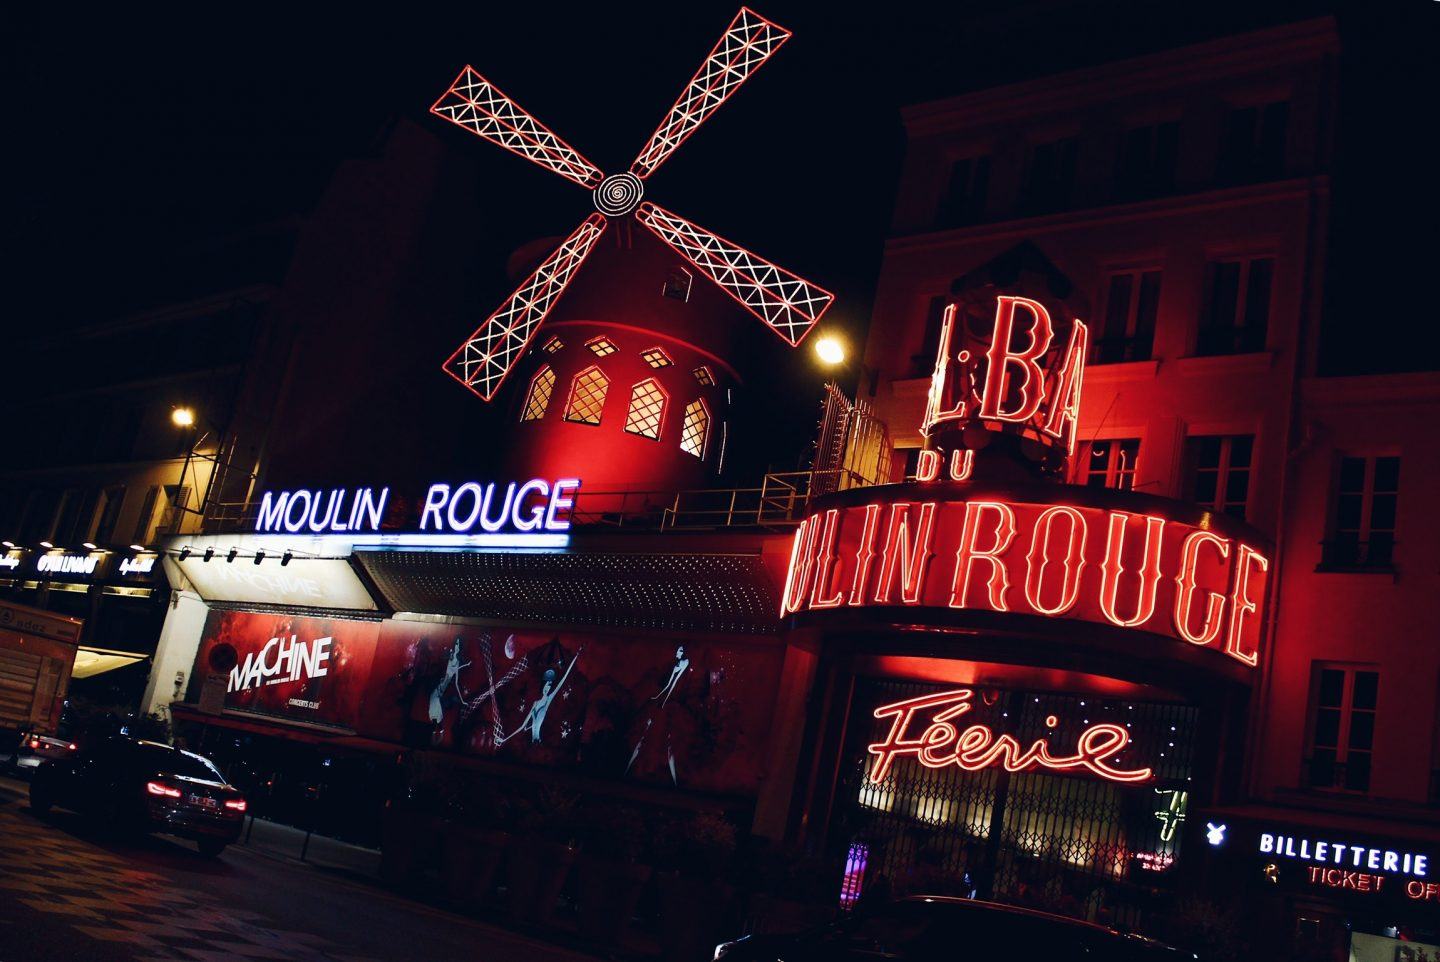 Visiting the Moulin Rouge theater during a weekend trip to Paris, France!